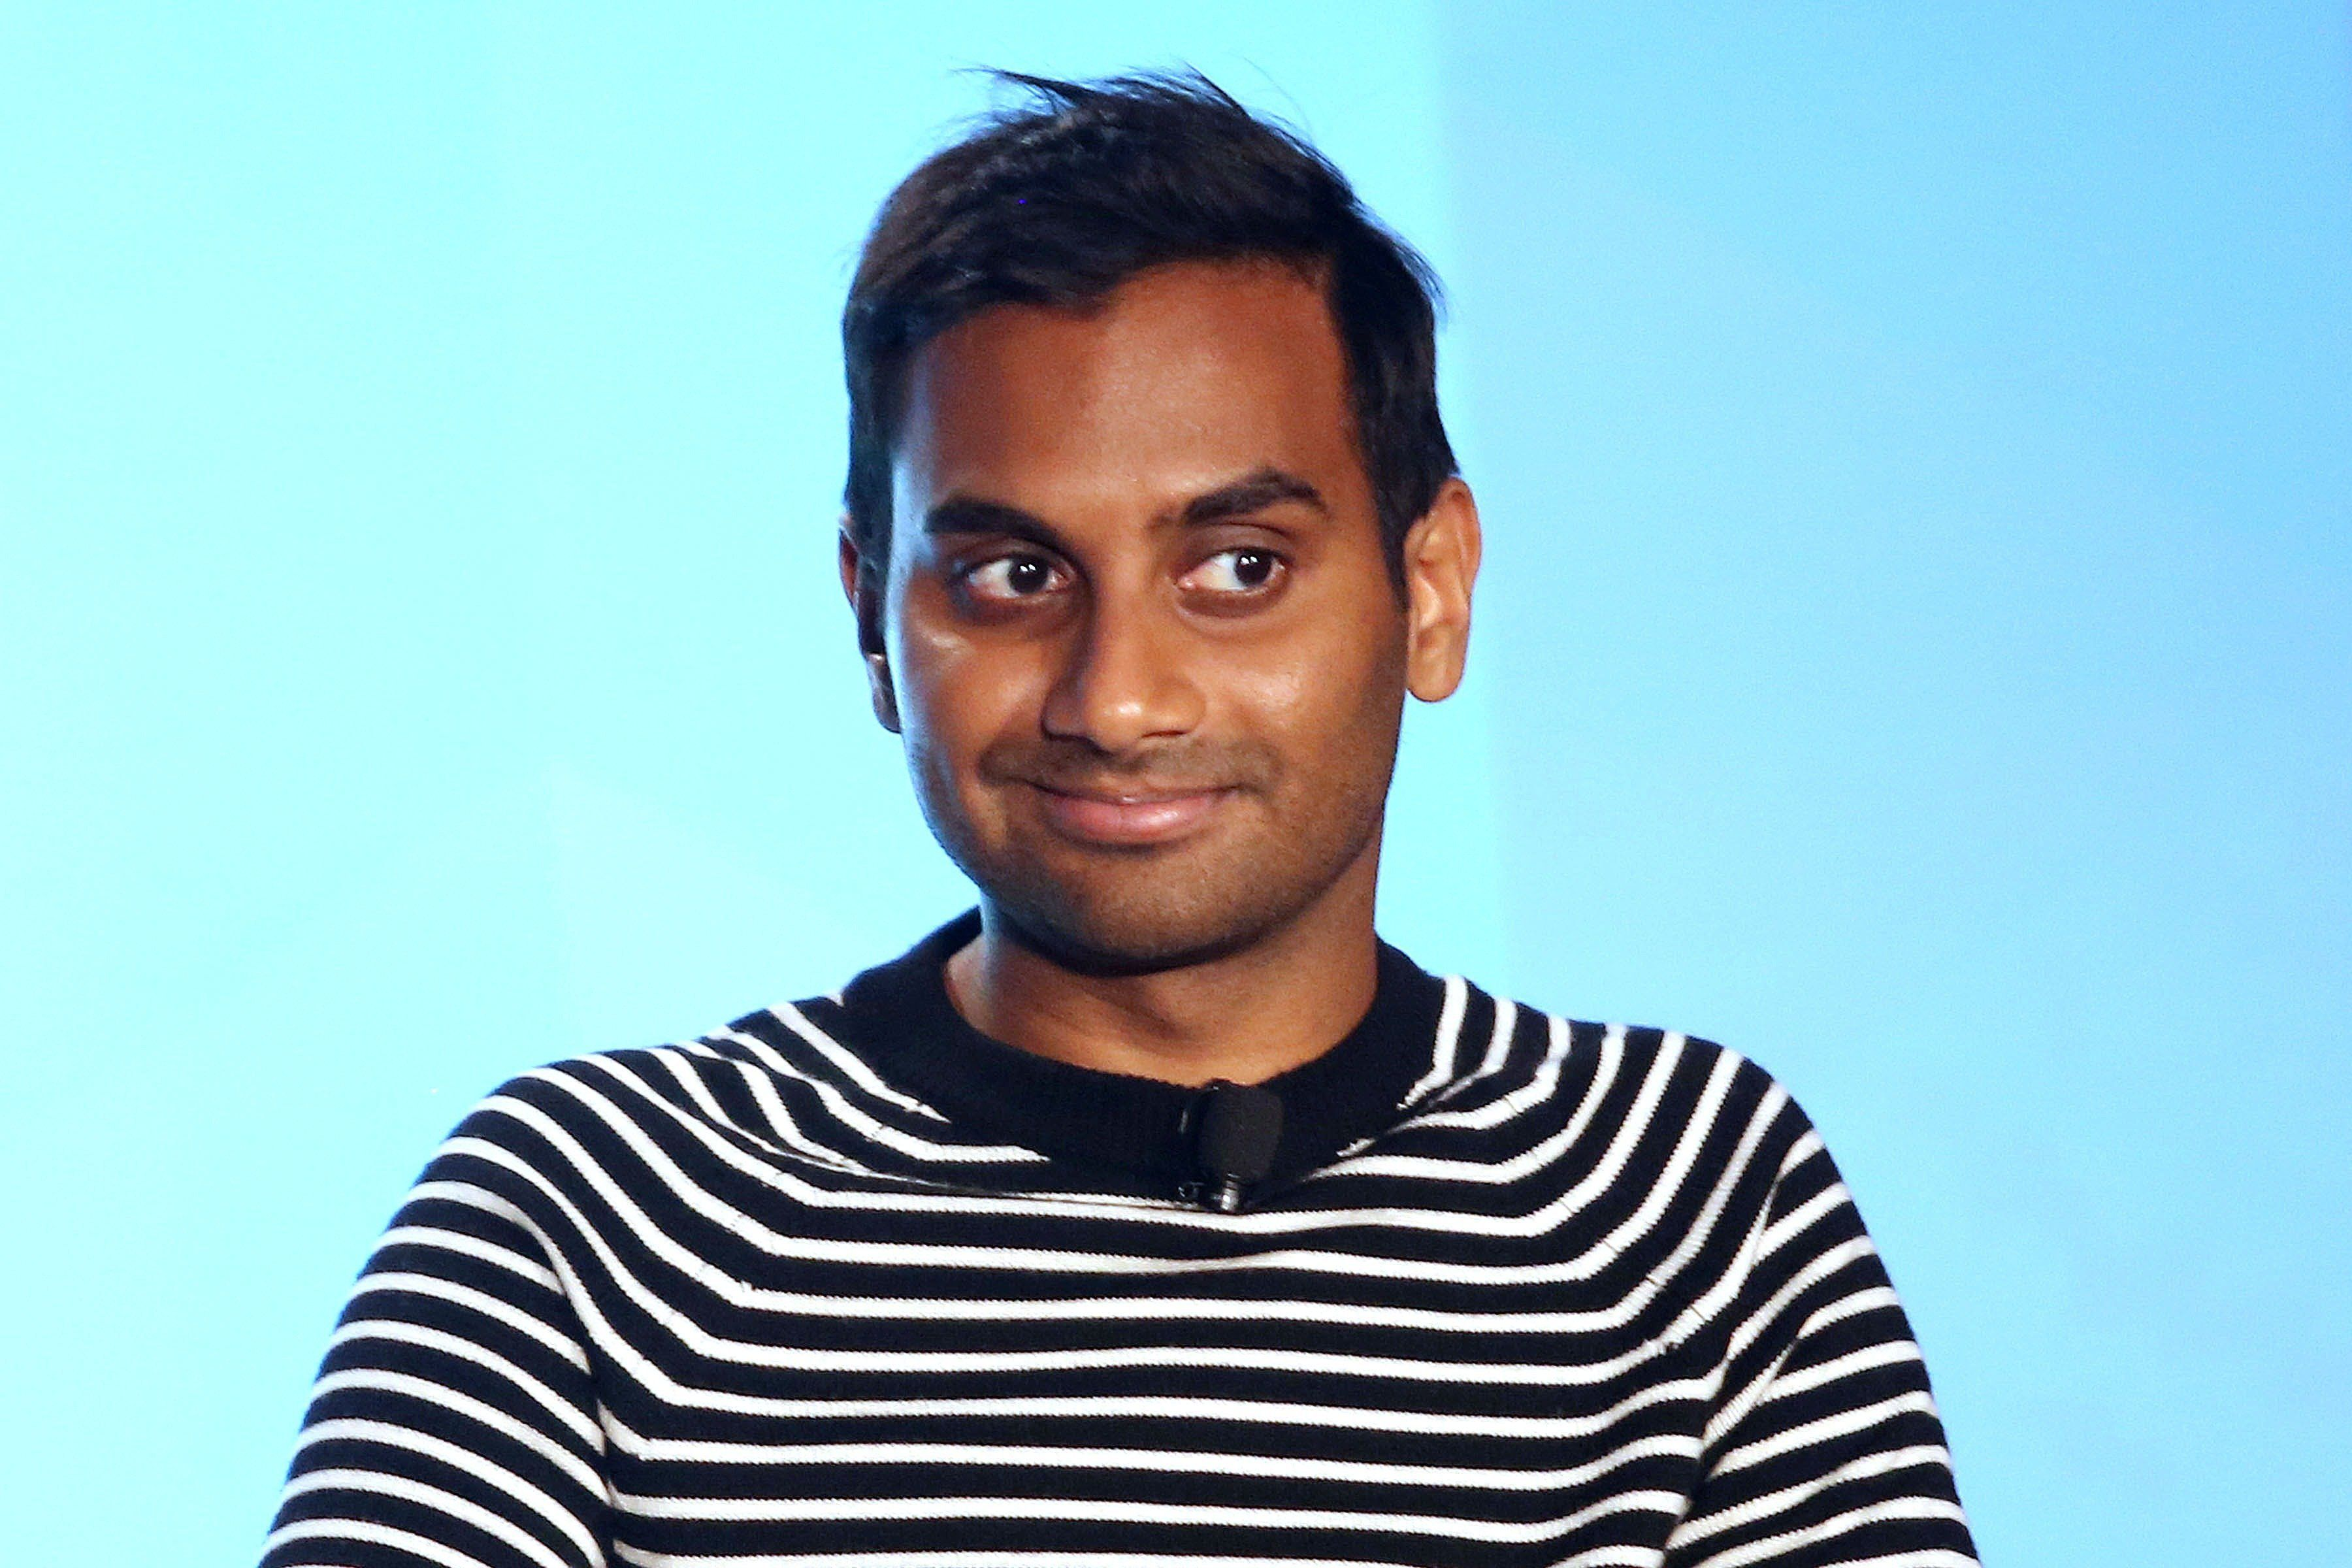 Aziz Ansari Doesn't Read, Watch Or Talk About The News